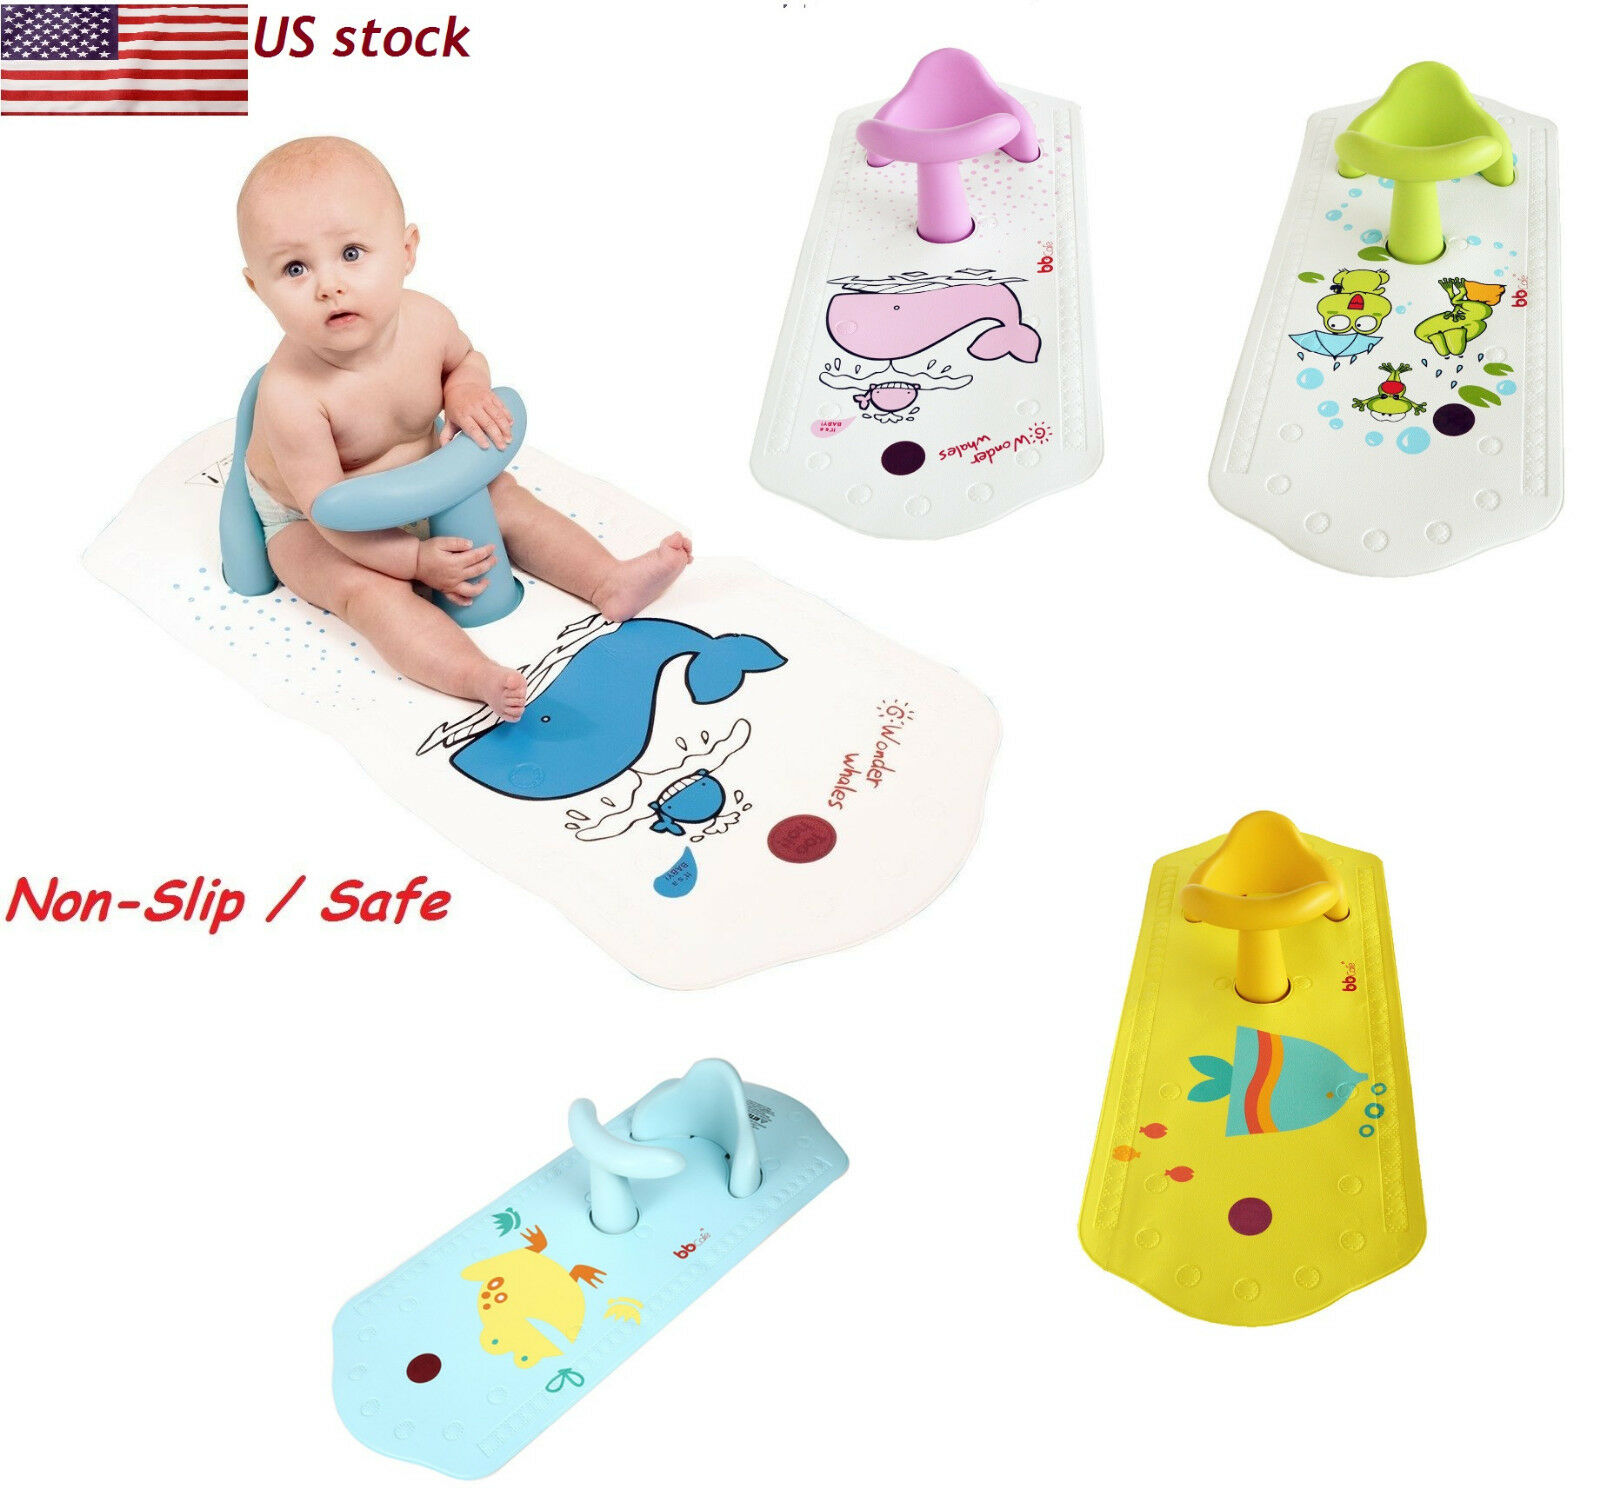 BABY BATH TUB Ring Seat FUN Keter Infant Anti Slip Chair Safety Heat ...